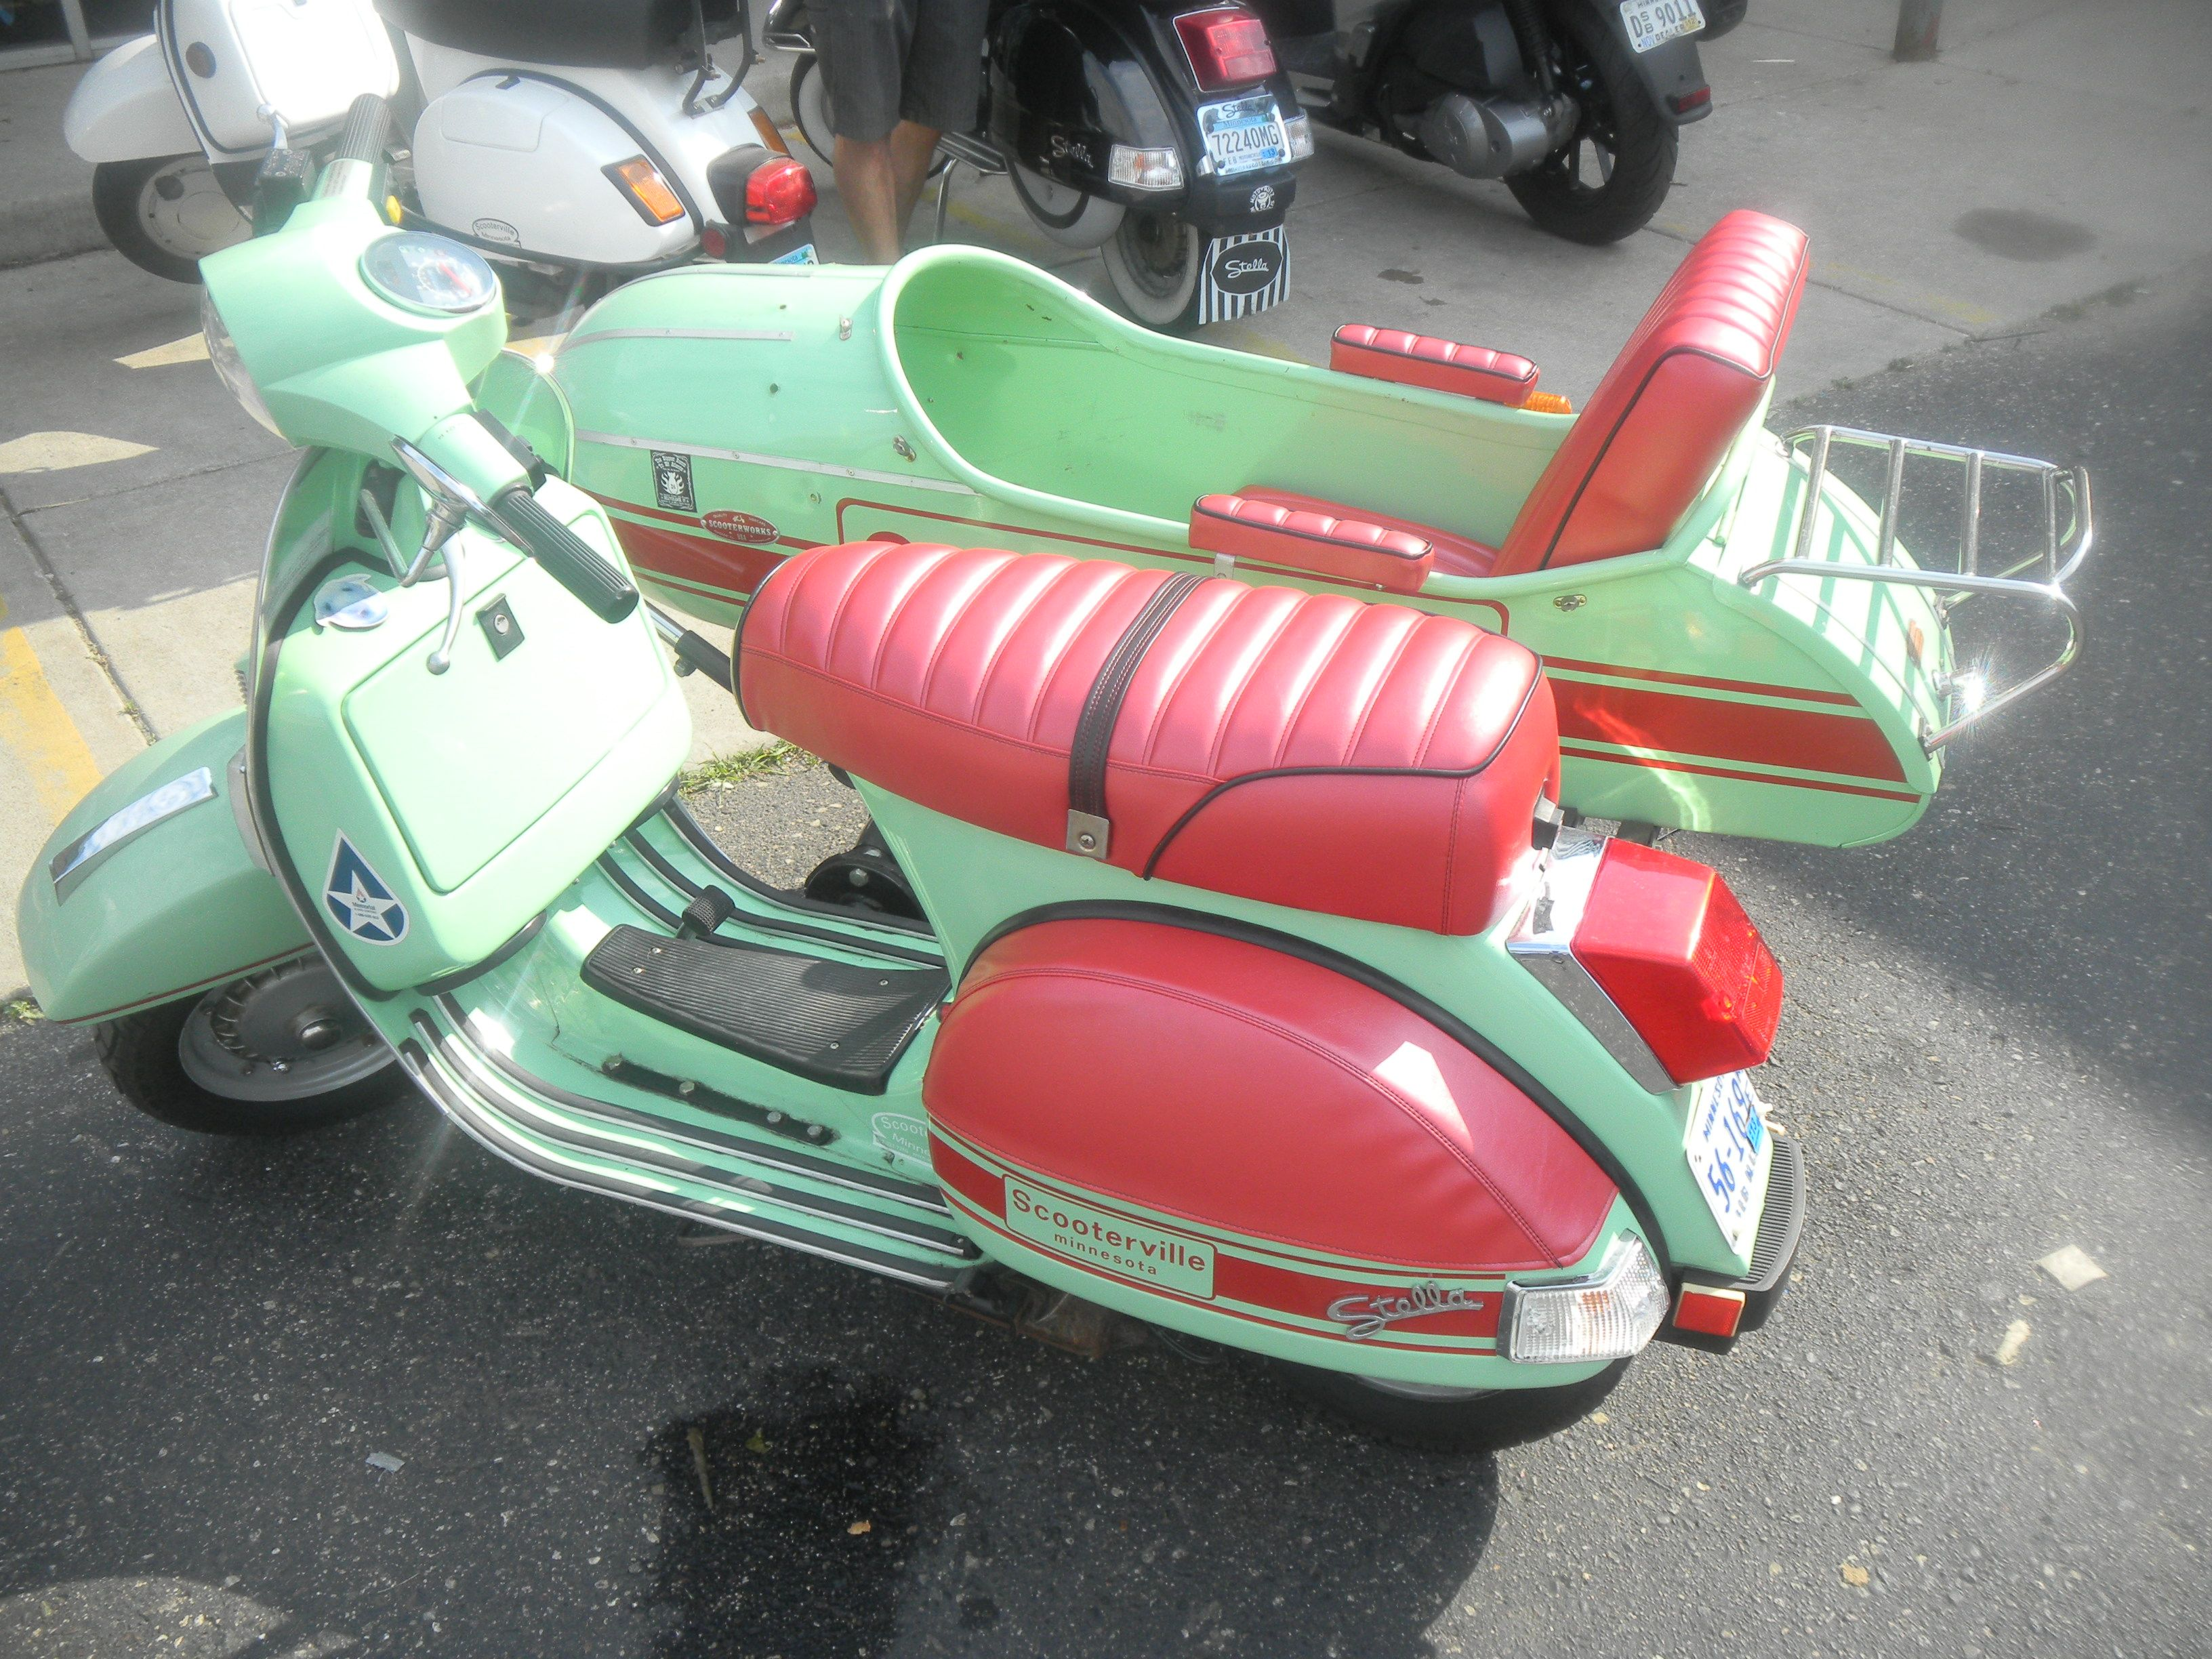 Stella scooter and sidecar